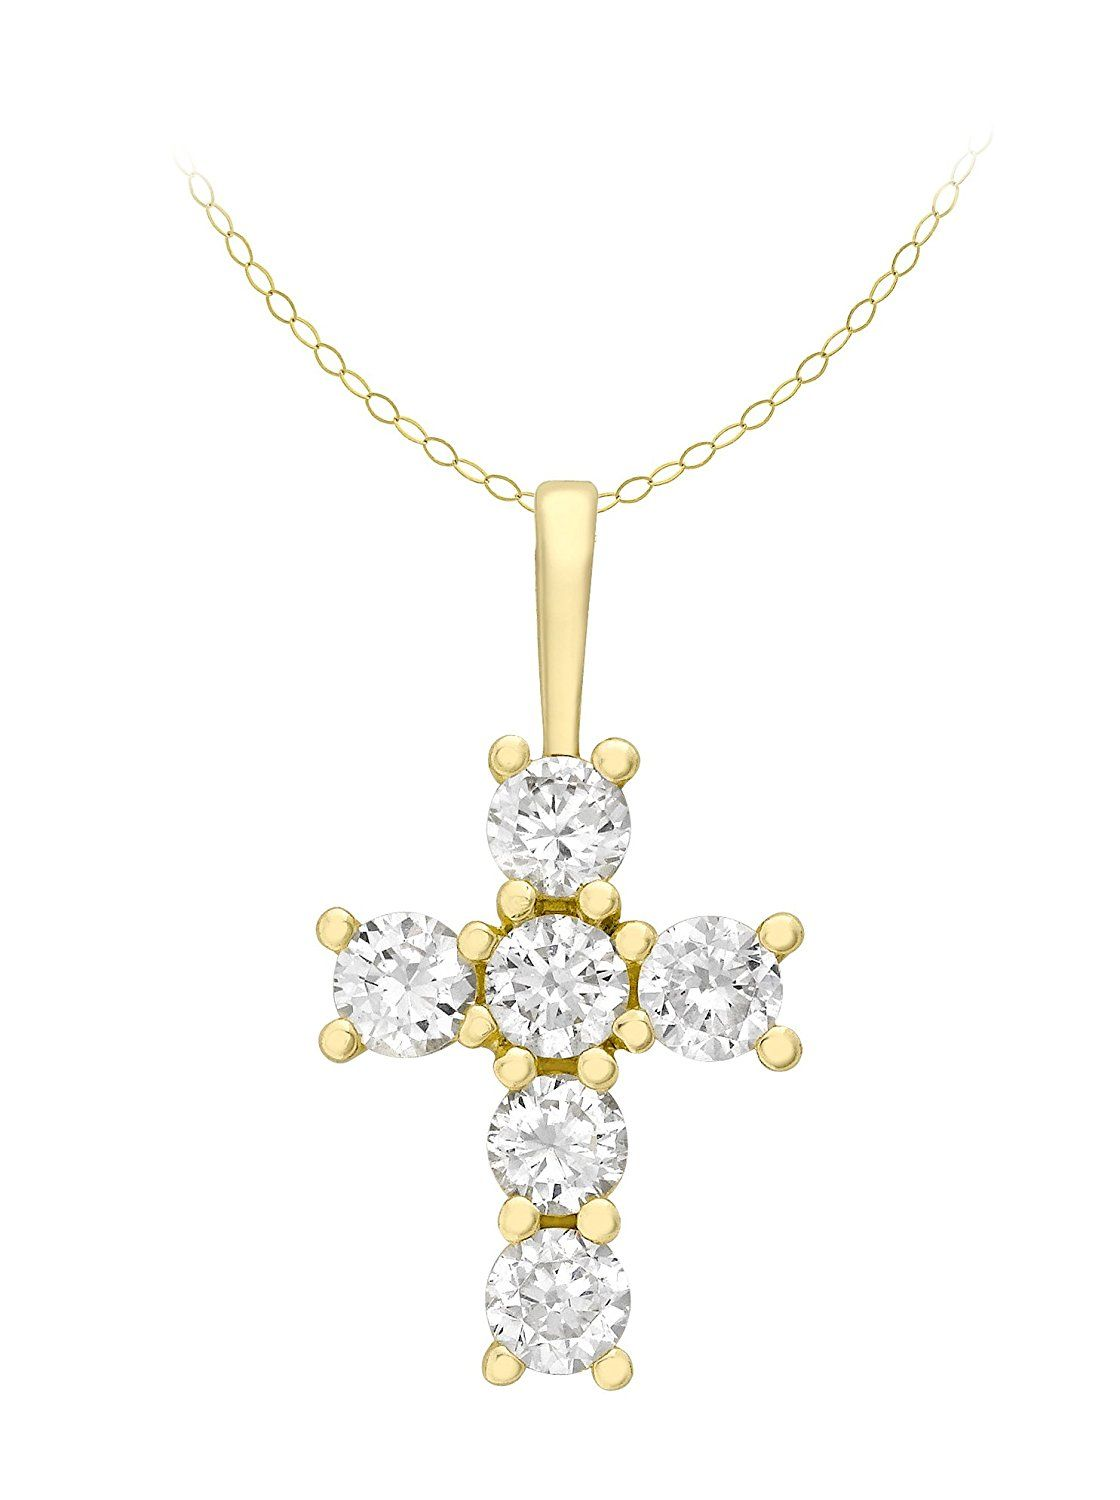 Carissima Gold 9ct Yellow Gold Cubic Zirconia Cluster and Pearl Pendant on Curb Chain Necklace of 46cm/18 X4g82QW